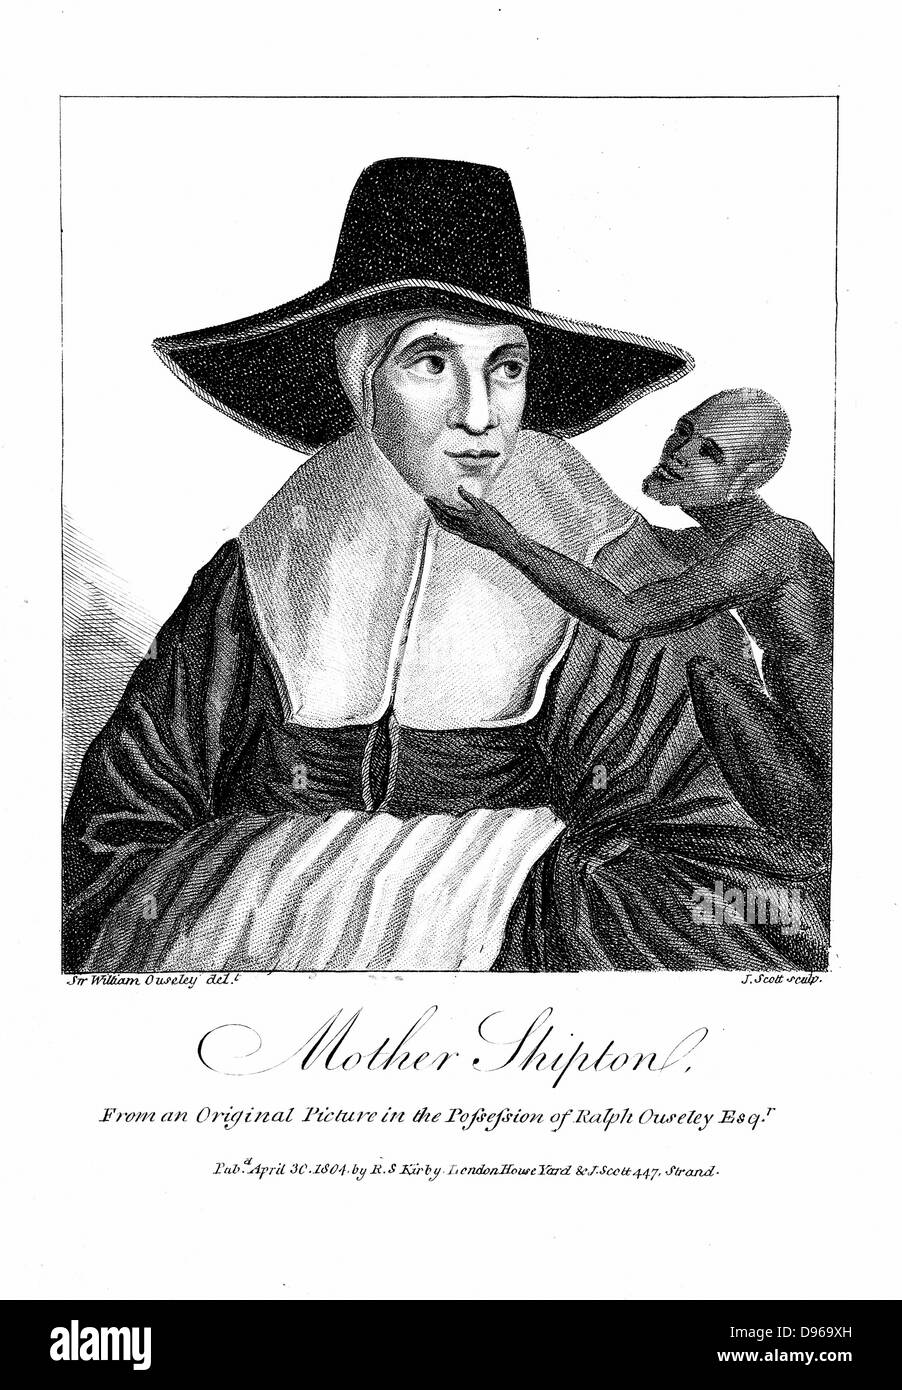 Mother Shipton (1488-c1560) English witch and prophetess, first mentioned in 1641. Here with her familiar, a monkey. - Stock Image